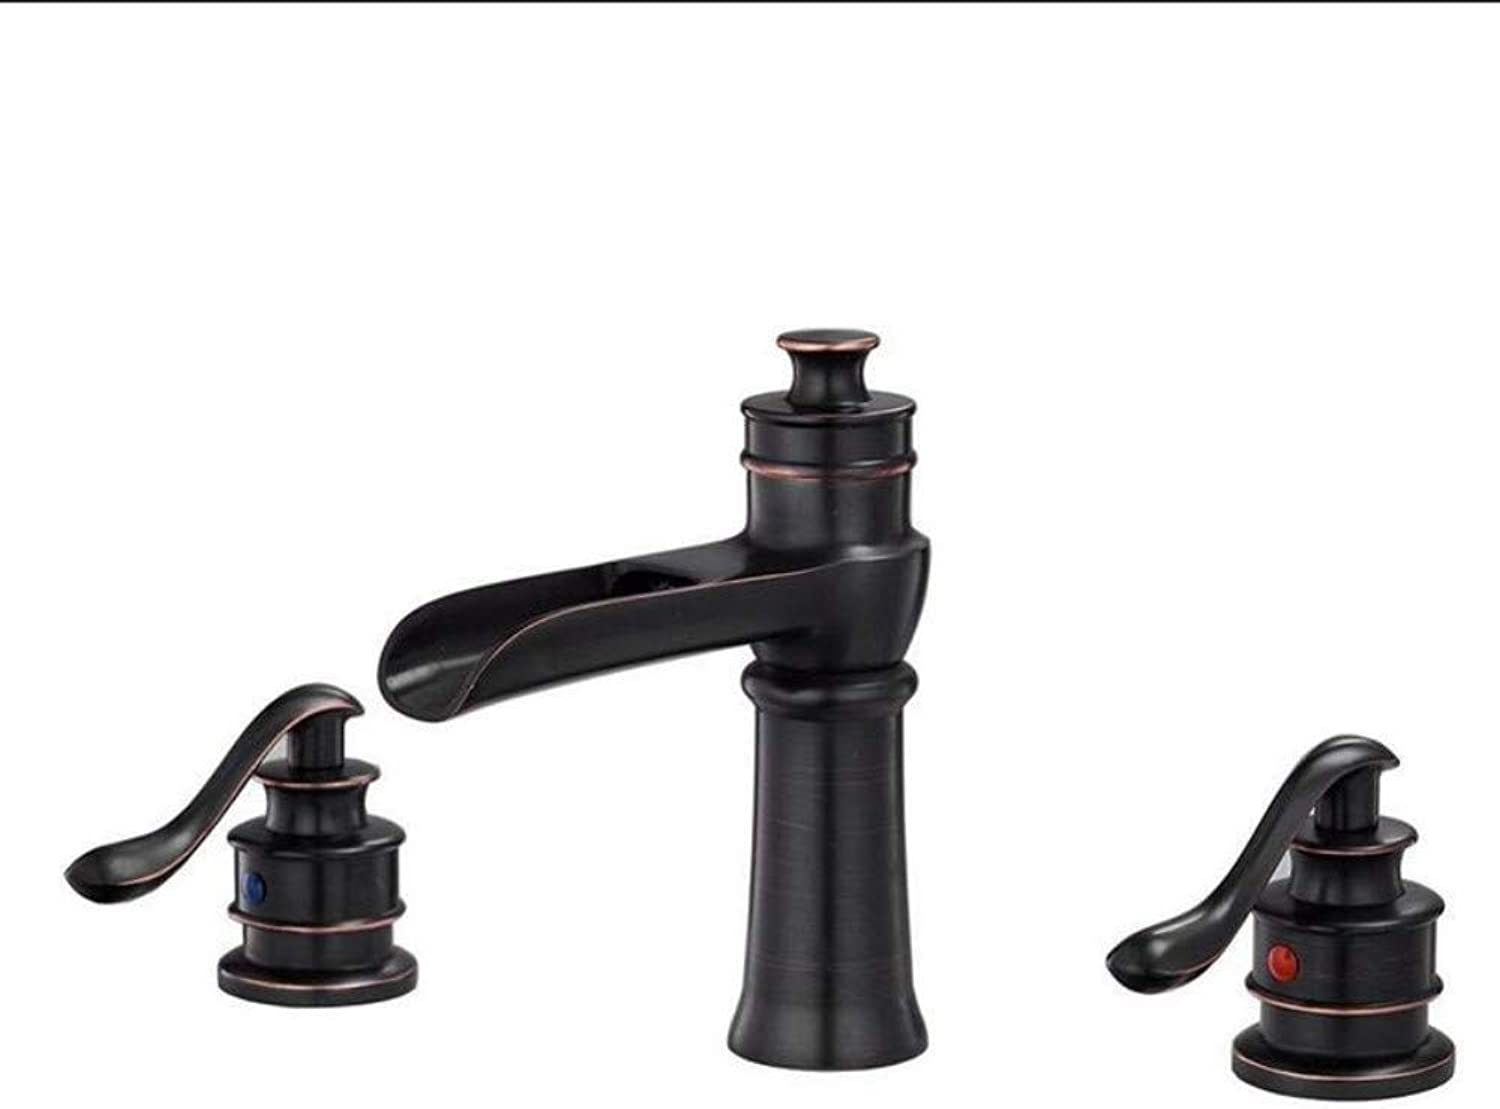 Luxury Plating Faucet Faucet Black Ancient Hot and Cold Lavatory Faucet Double Open Three Hole Wash Basin Faucet